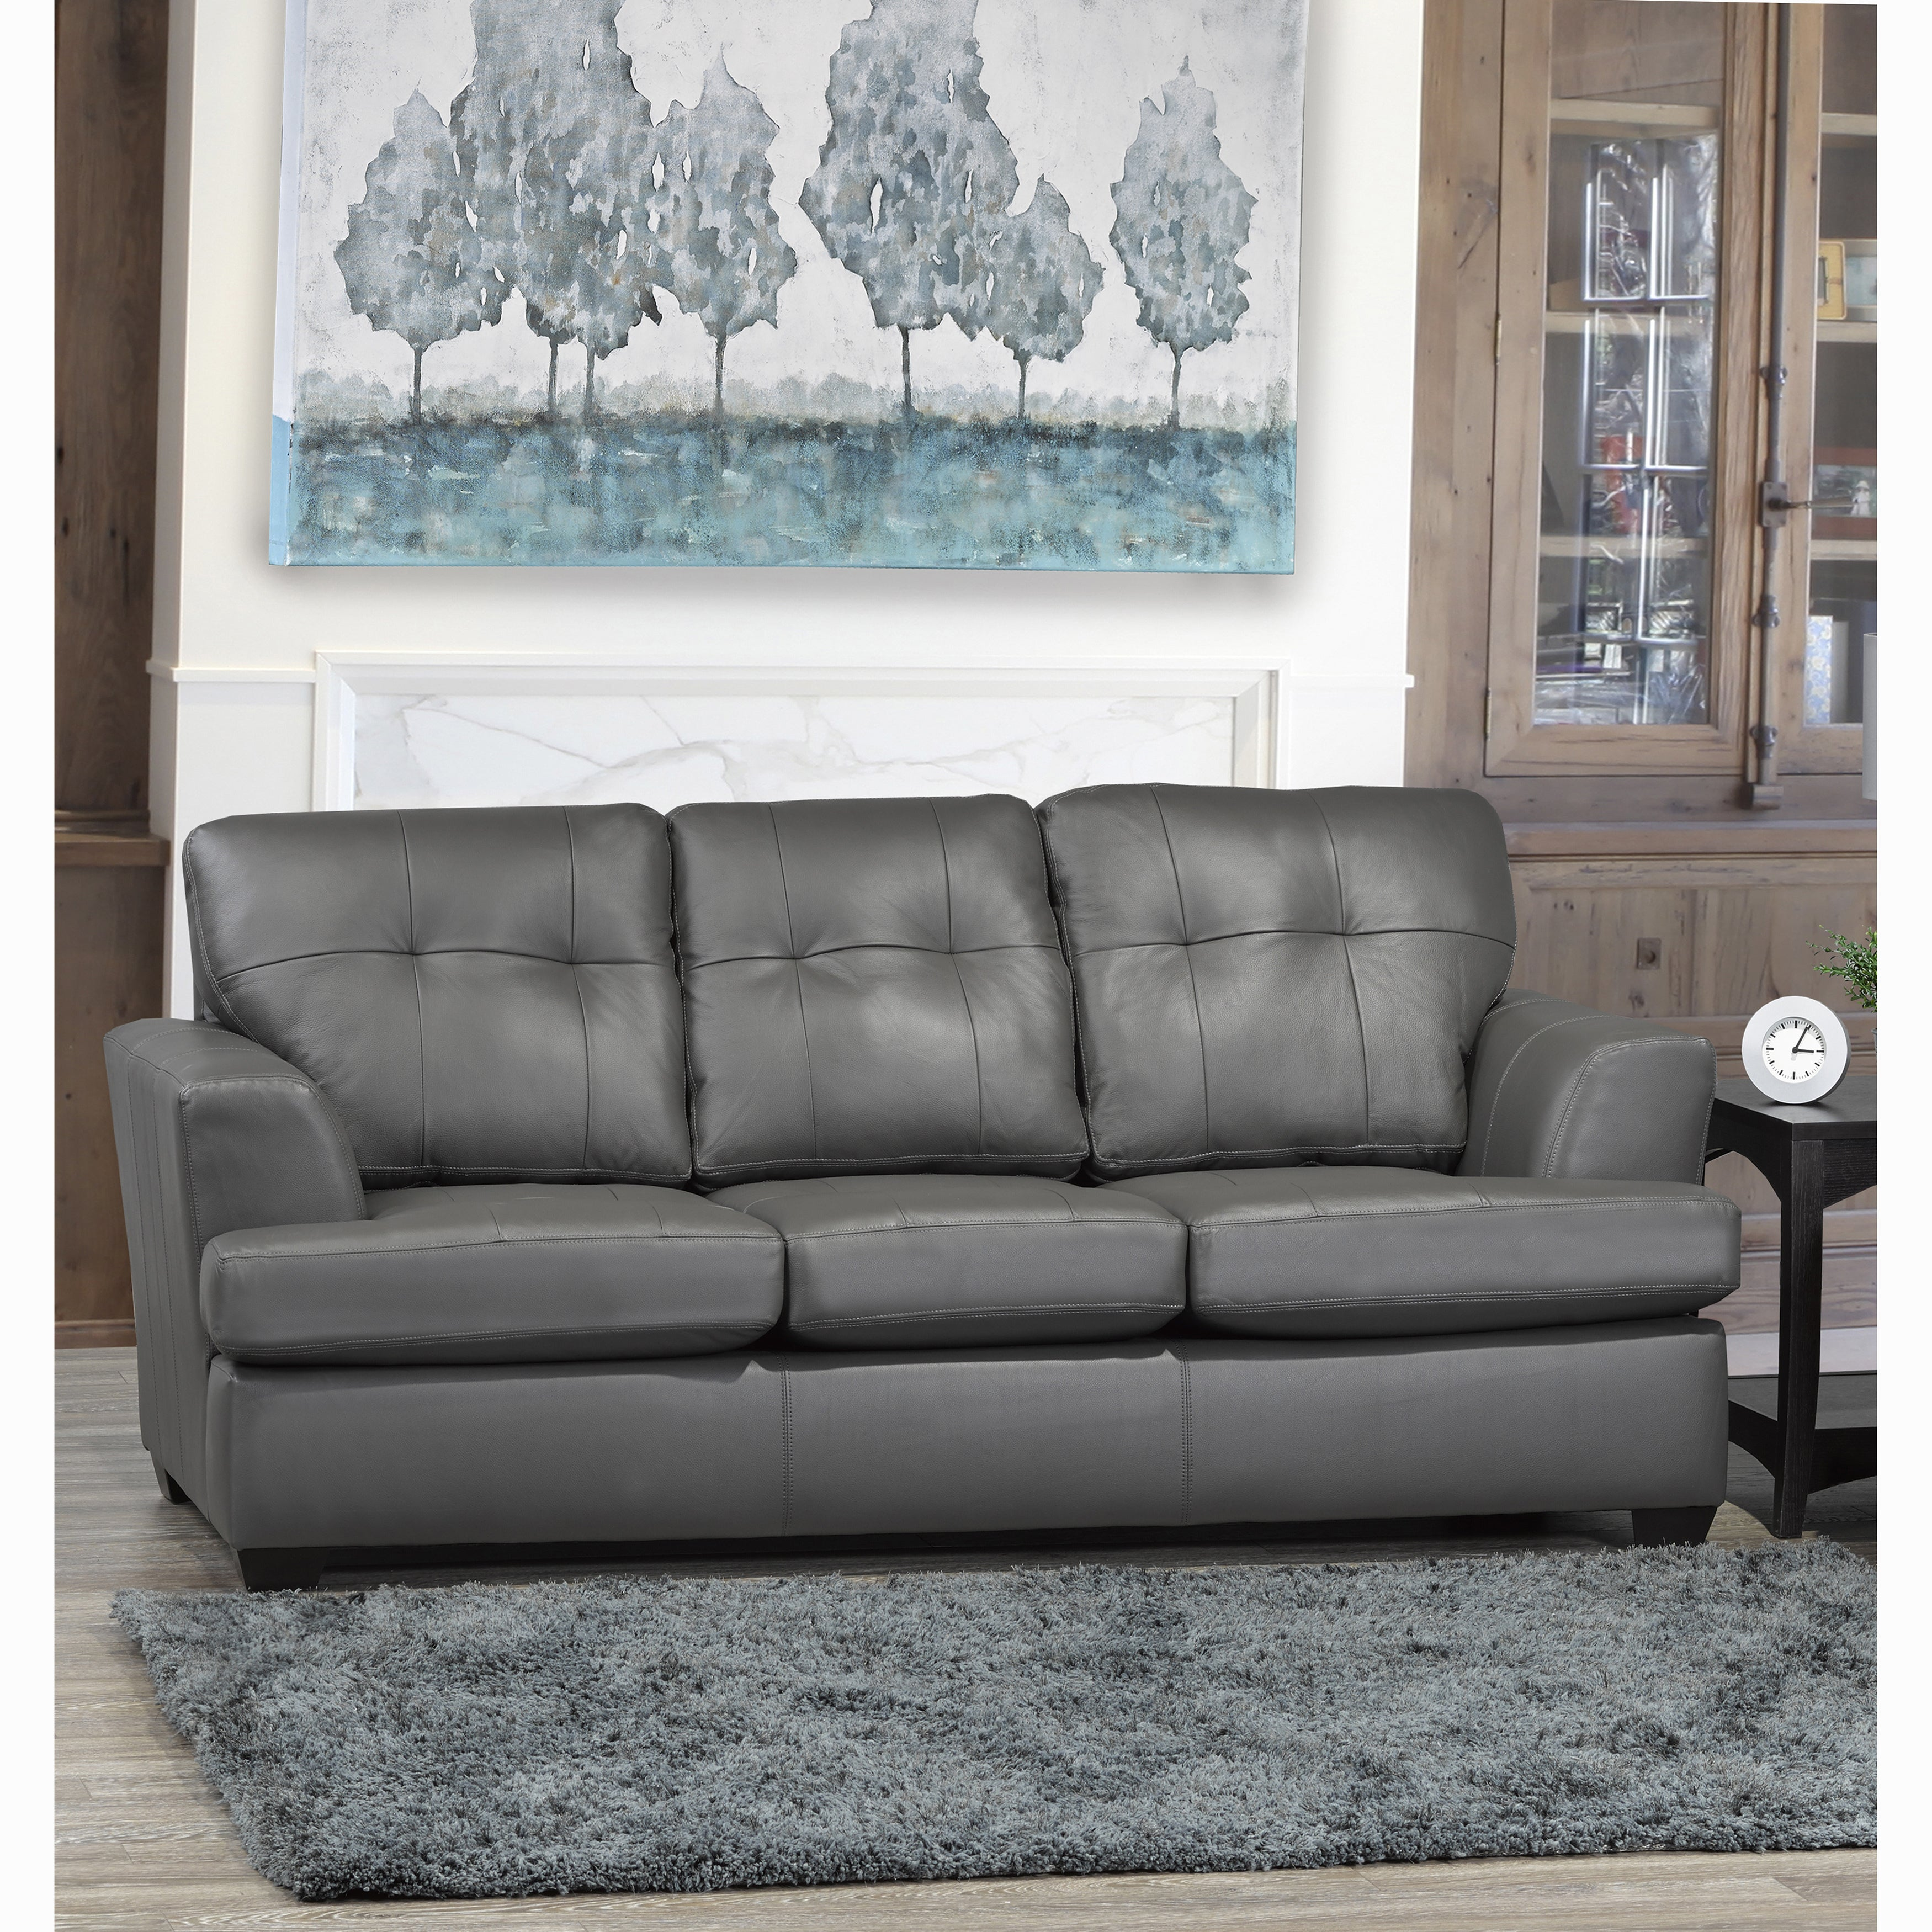 Grey Top Grain Leather Tufted Sofa